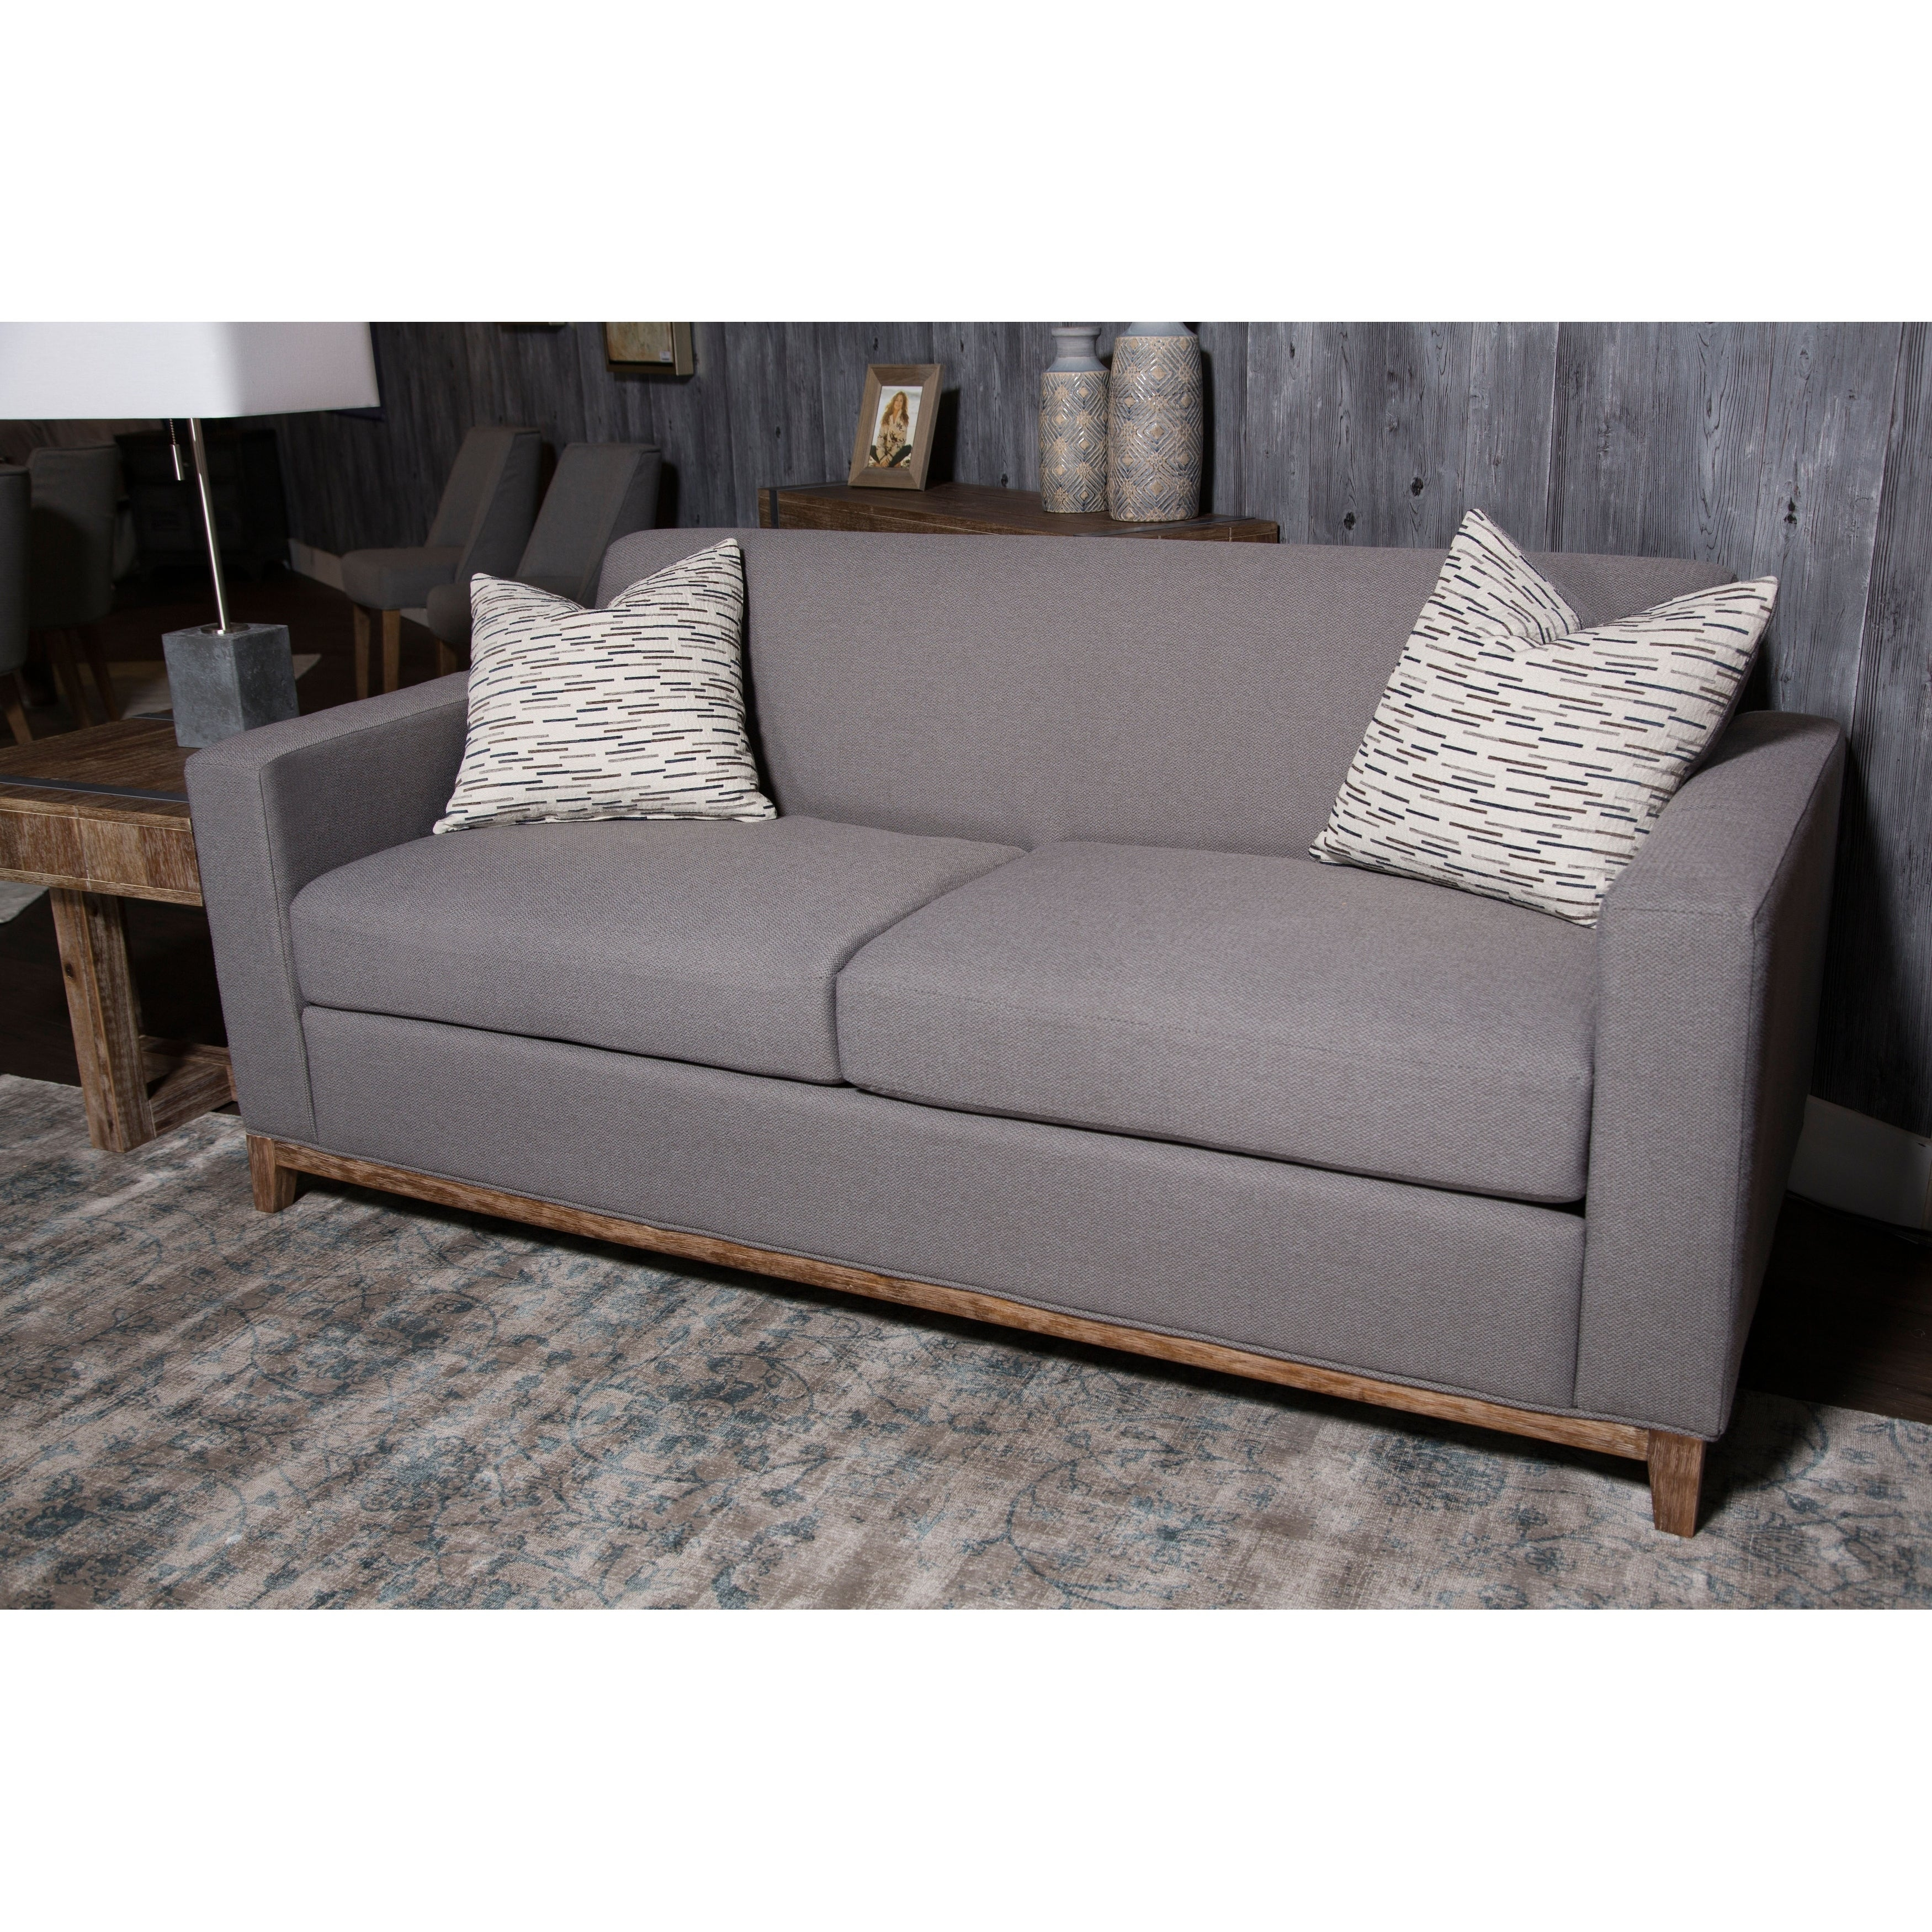 Cool Buy Michael Amini Sofas Couches Online At Overstock Our Download Free Architecture Designs Itiscsunscenecom